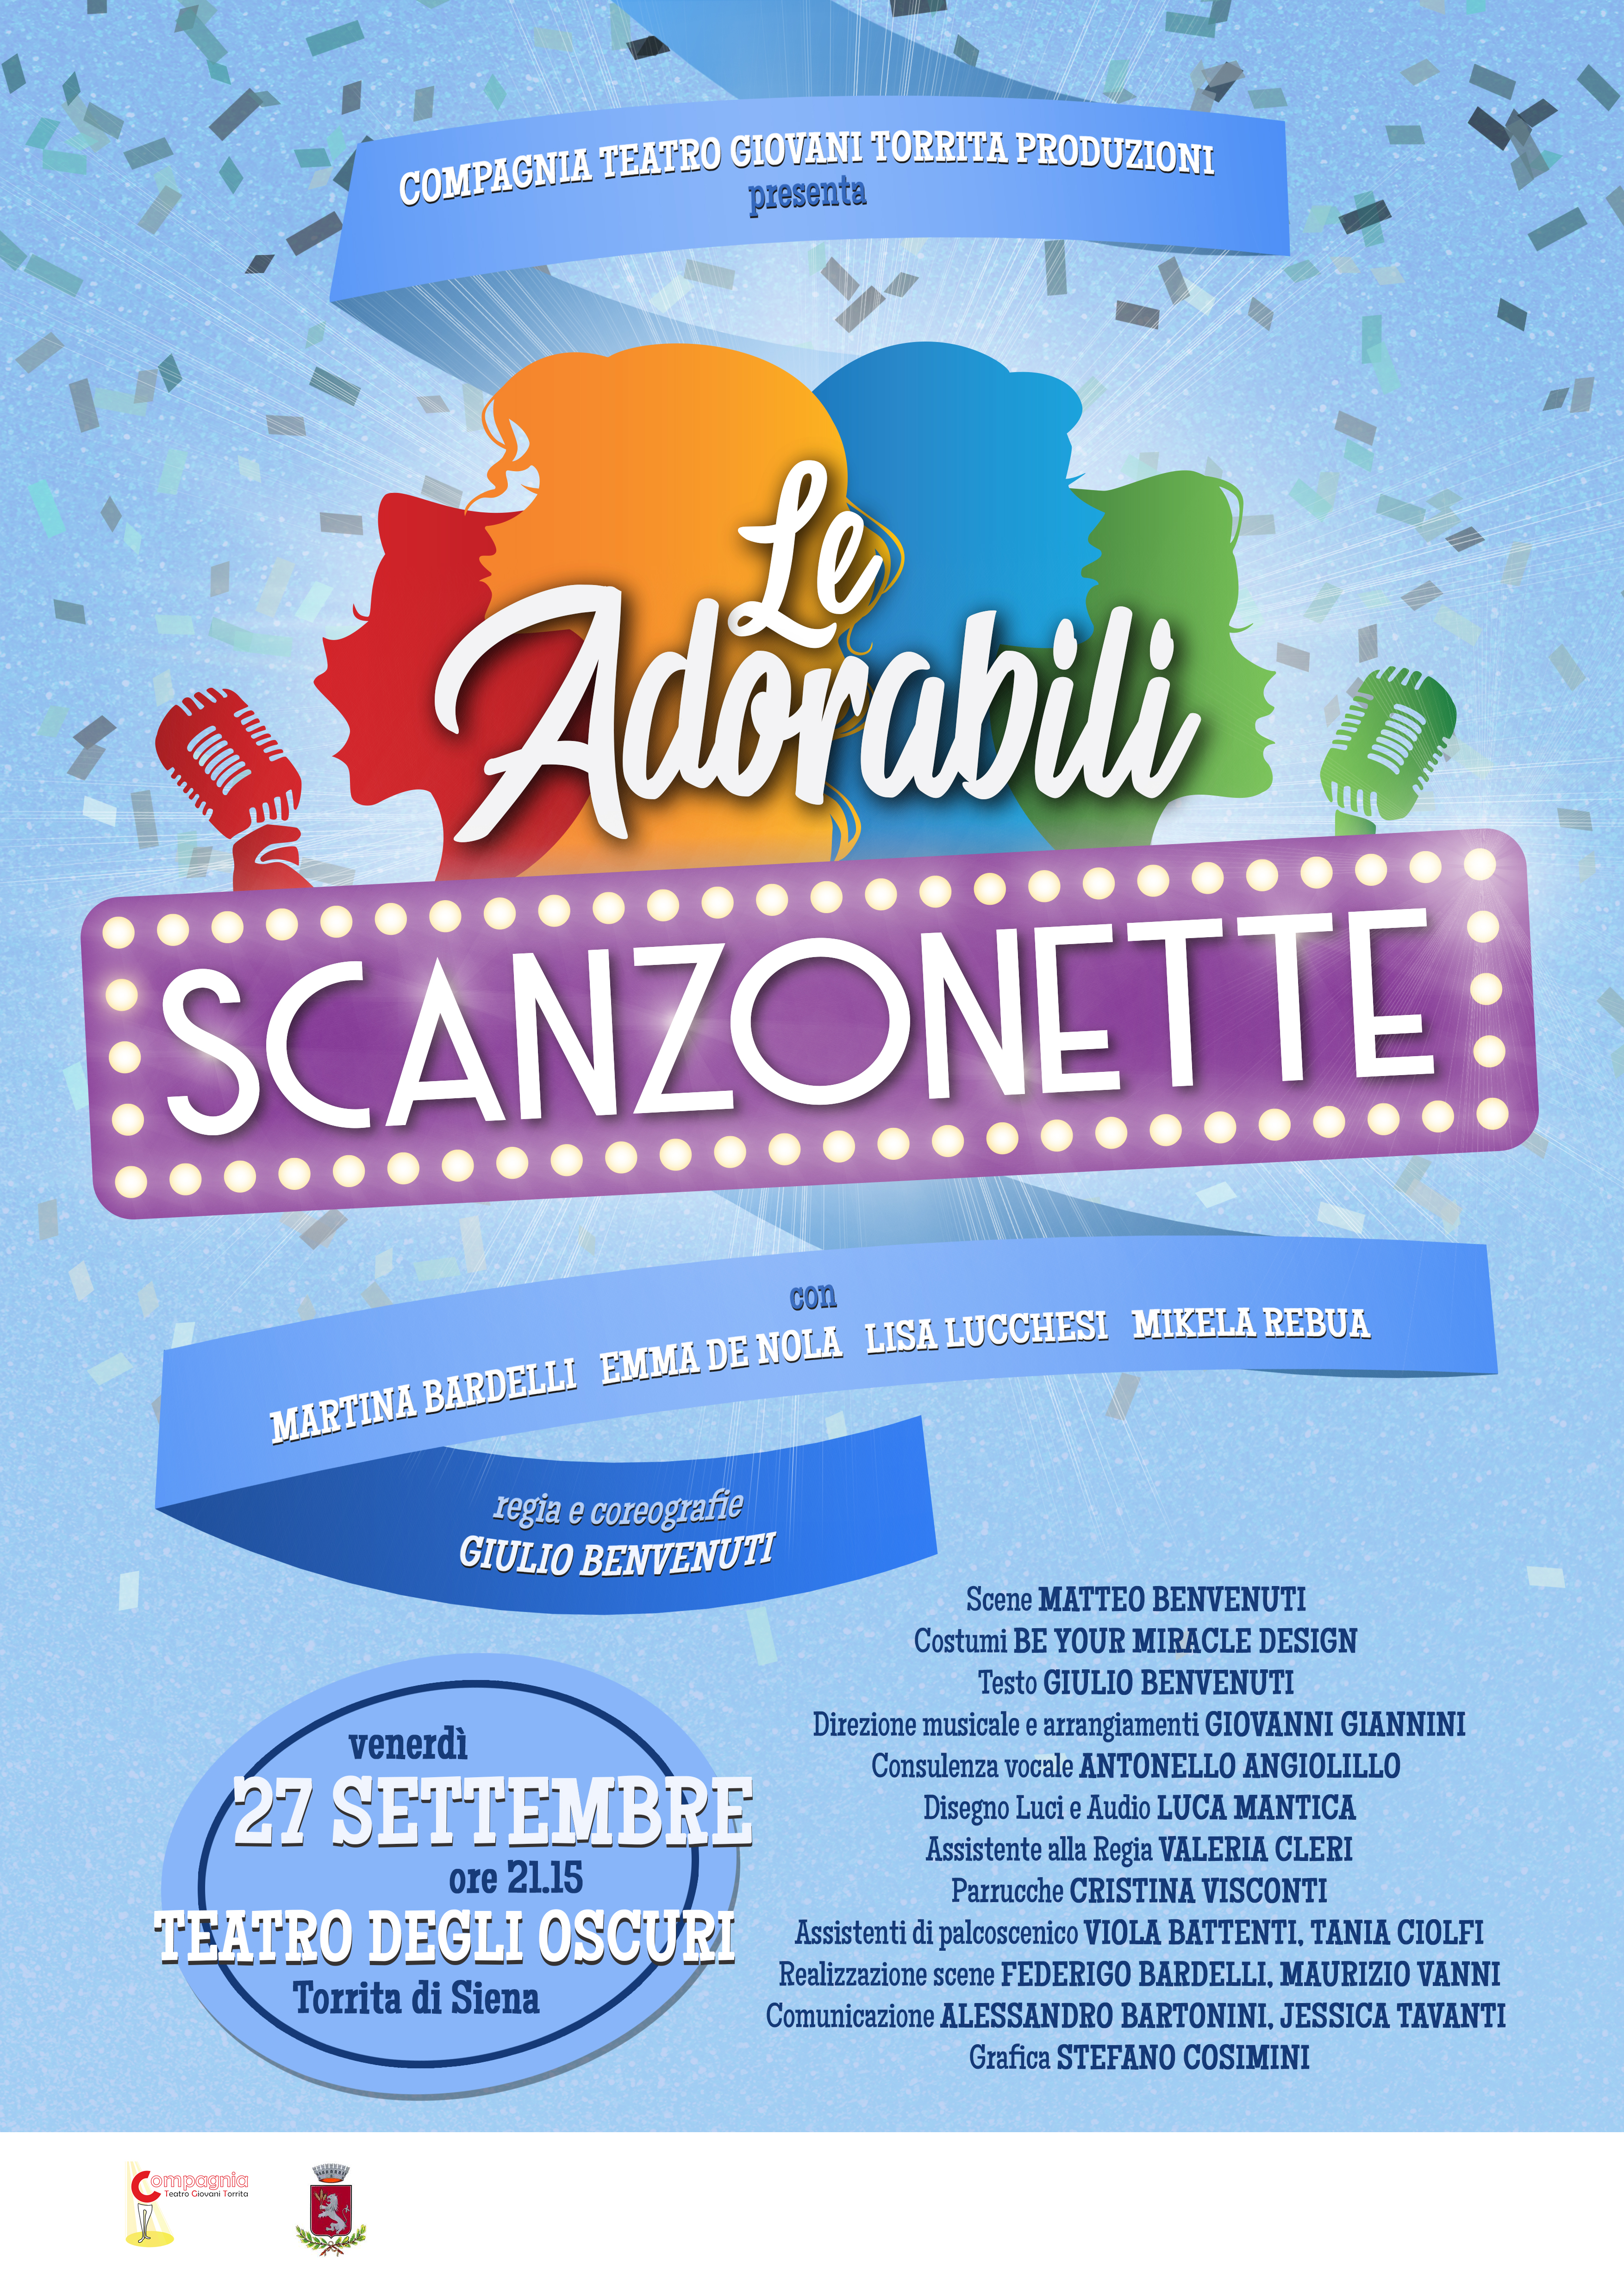 A draft for the musical Le Adorabili Scanzonette